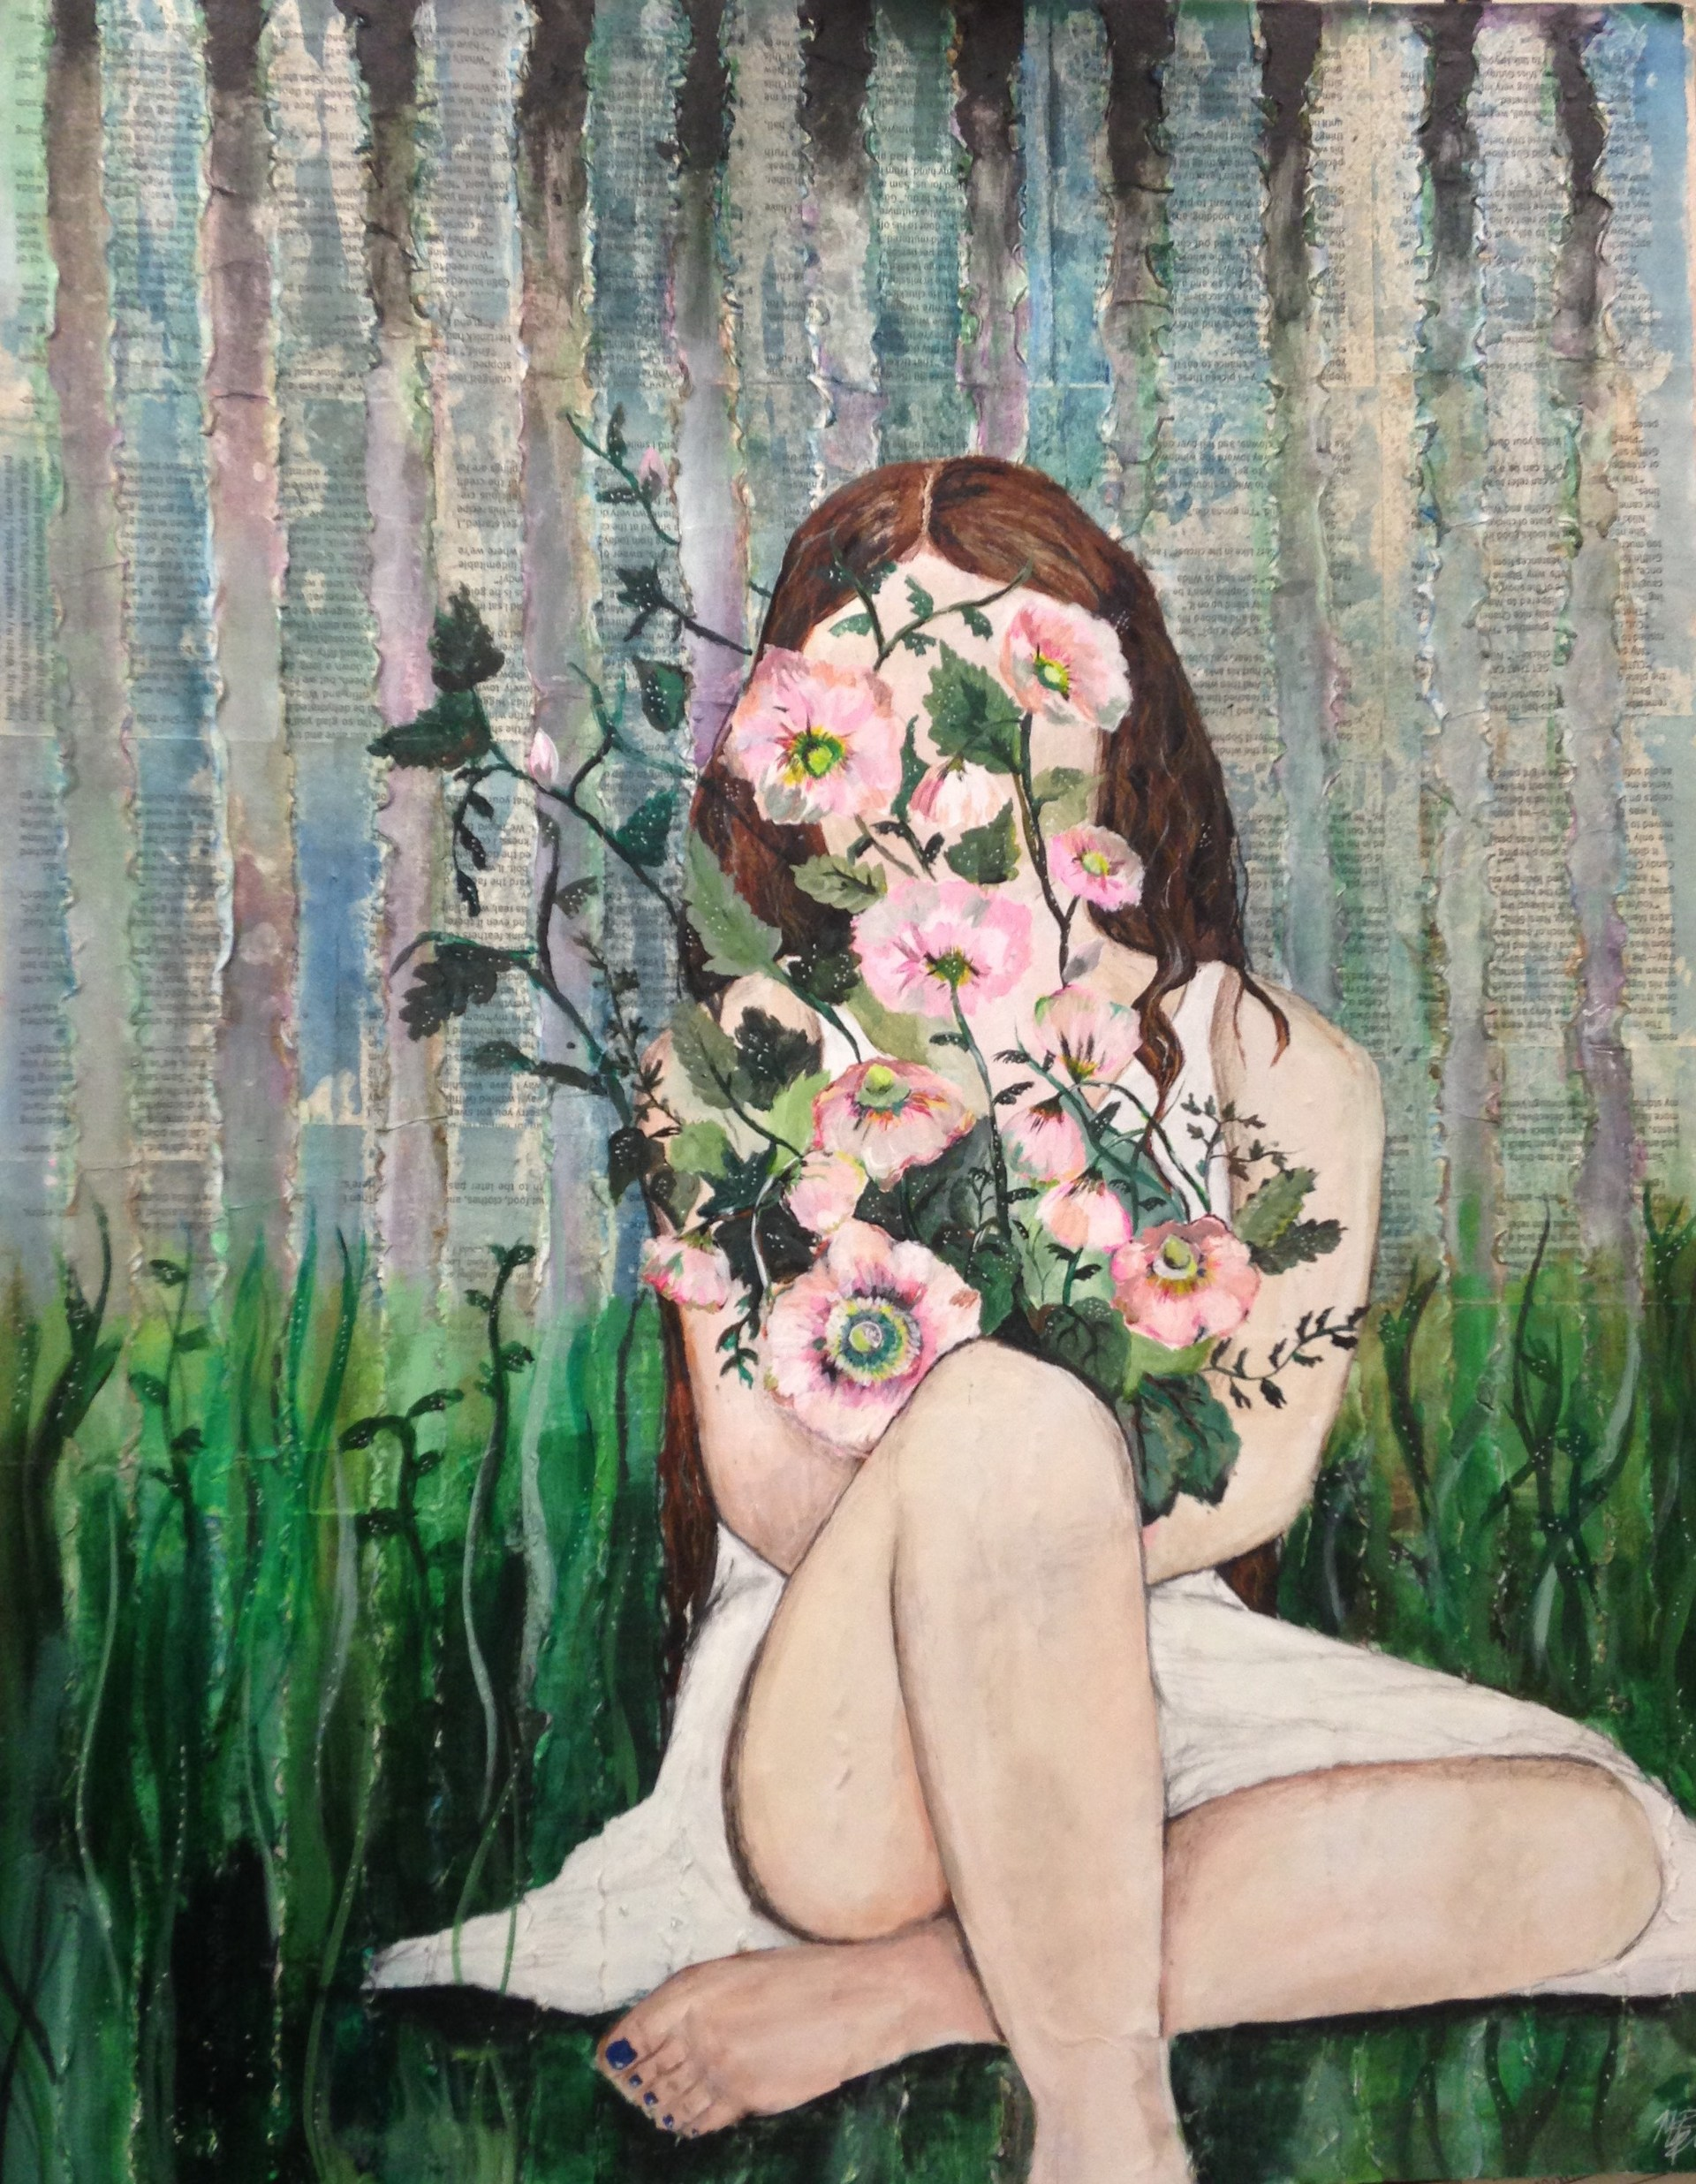 mixed media art of a girl sitting in flowers